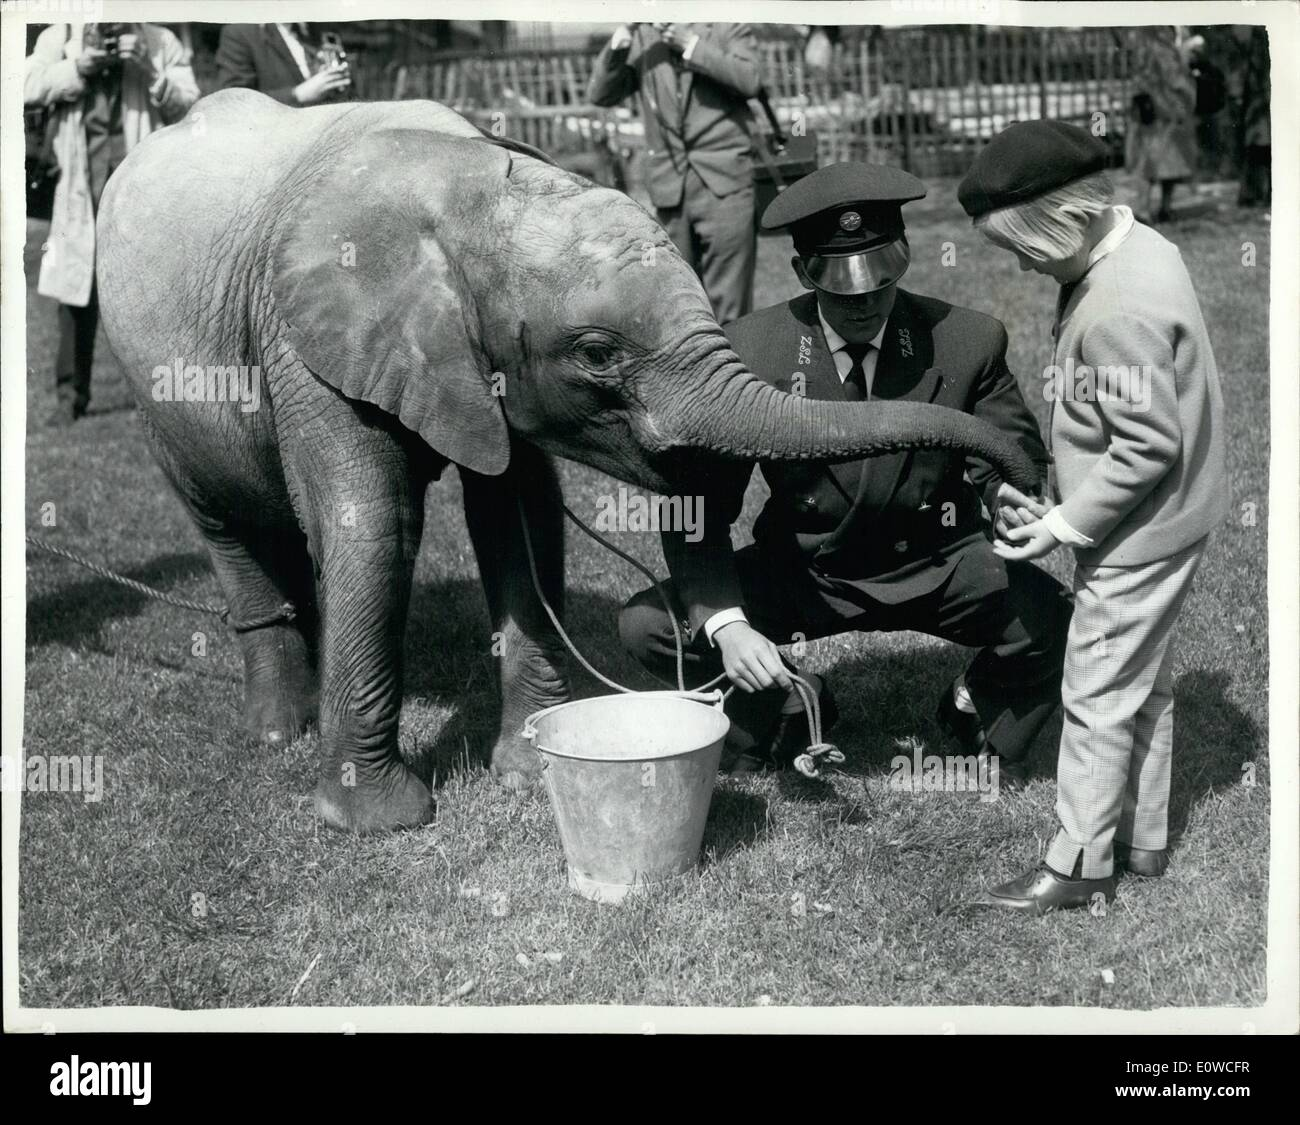 May 05, 1962 - Toto makes her bow... Two year old ''Toto''(it means 'baby') made her bow at the London zoo today. Stock Photo